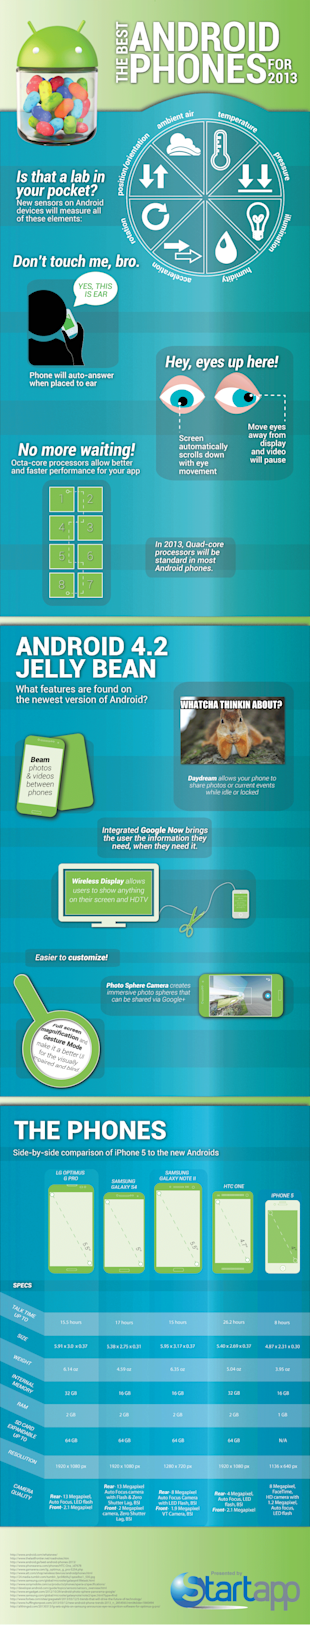 The Best of Android for 2013 [Infographic] image best android models1